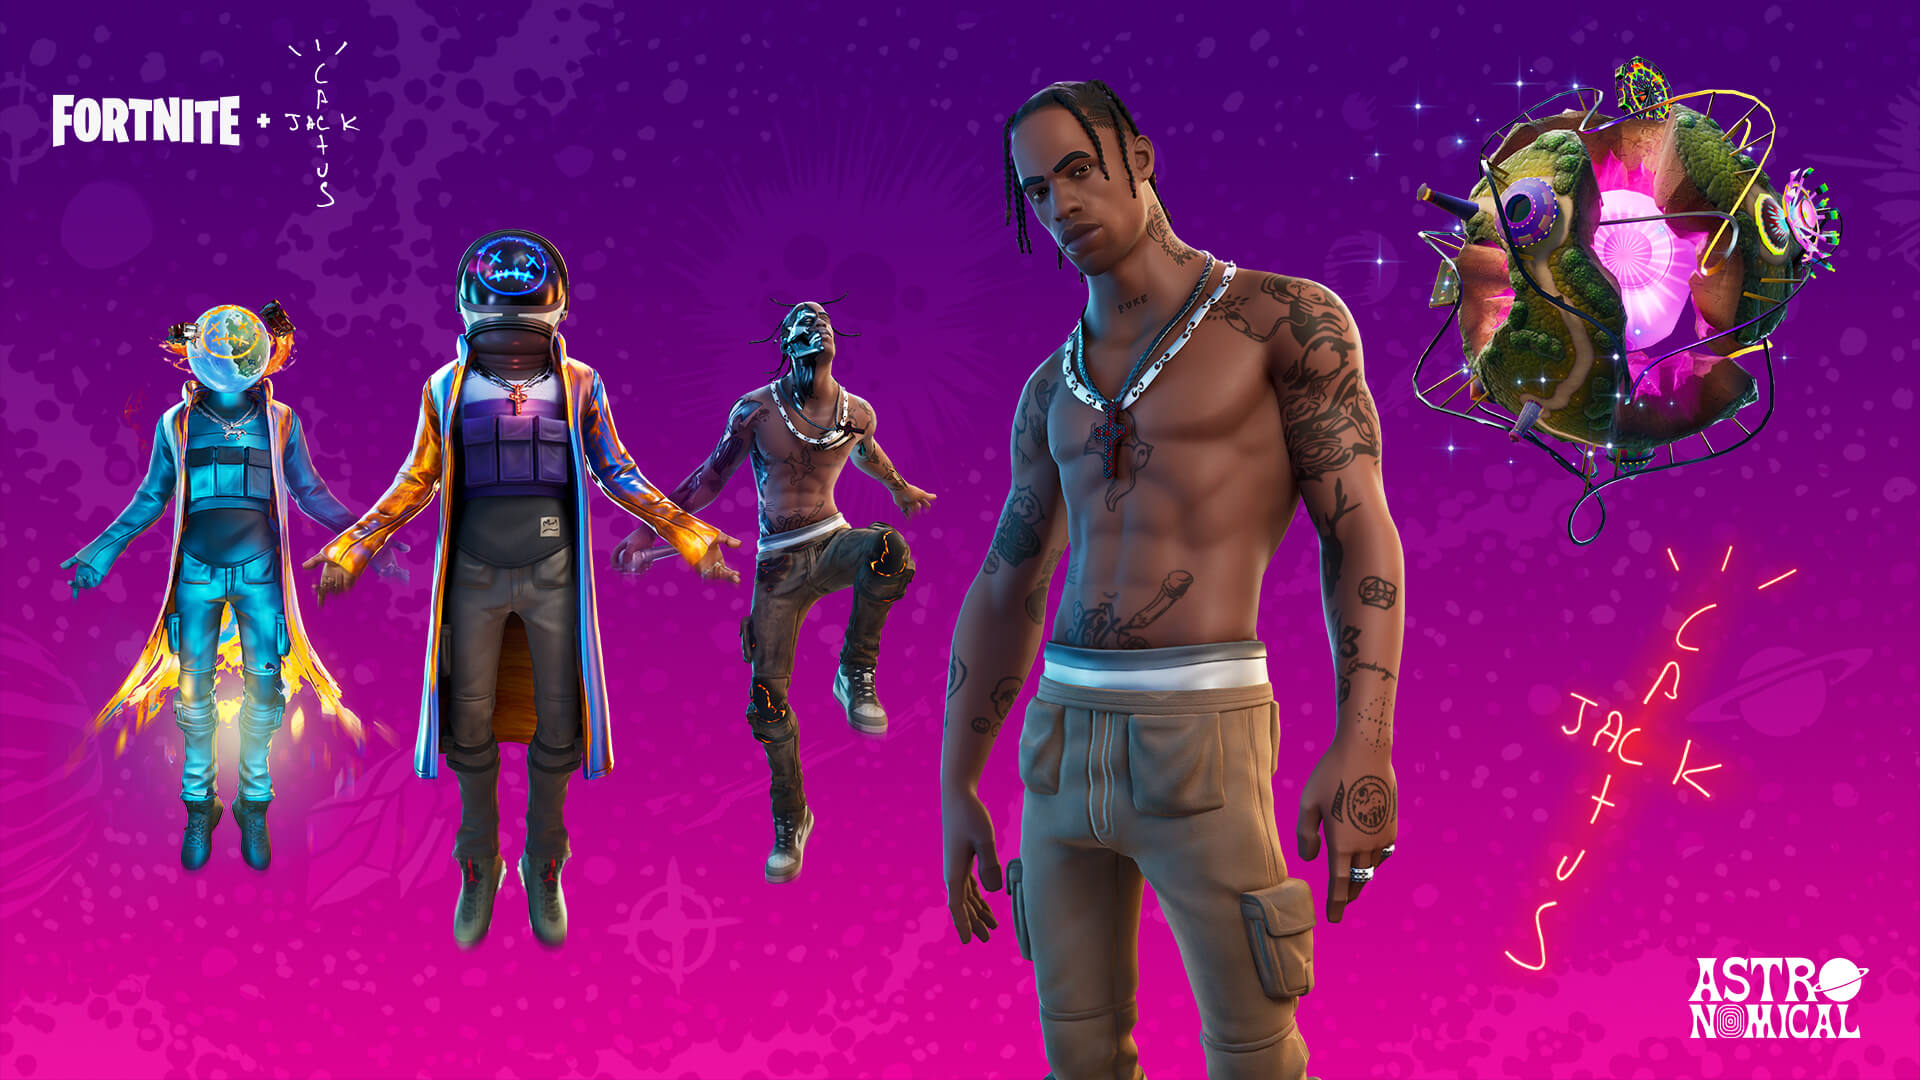 Travis Scott 'Fortnite'